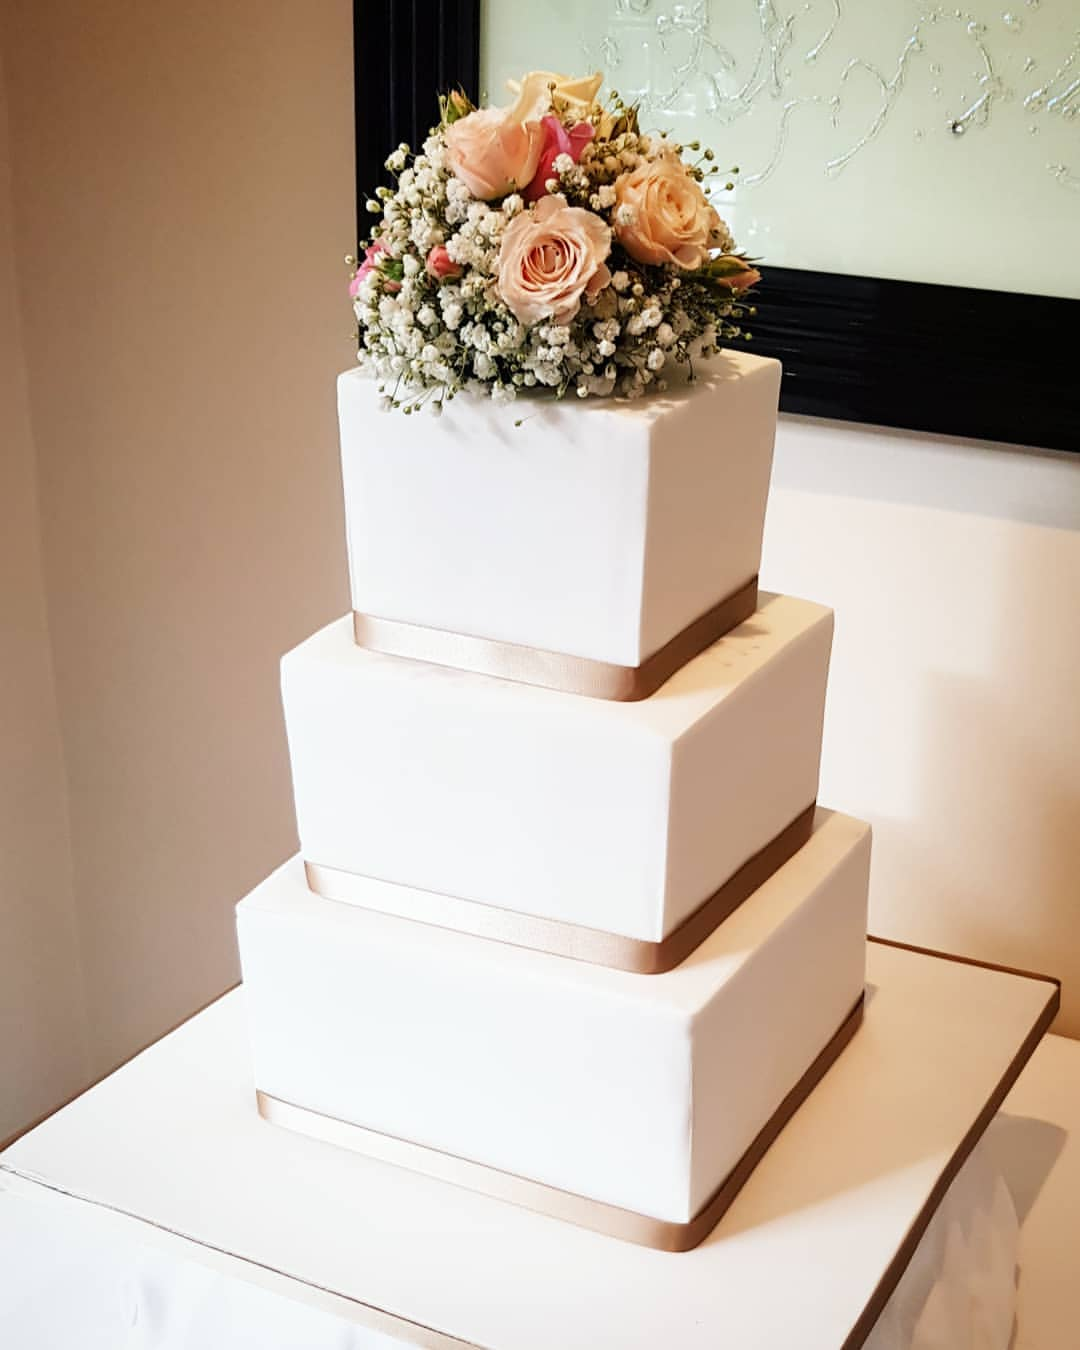 Three Tear Wedding Cakes.Simple Iced Three Tier Wedding Cake